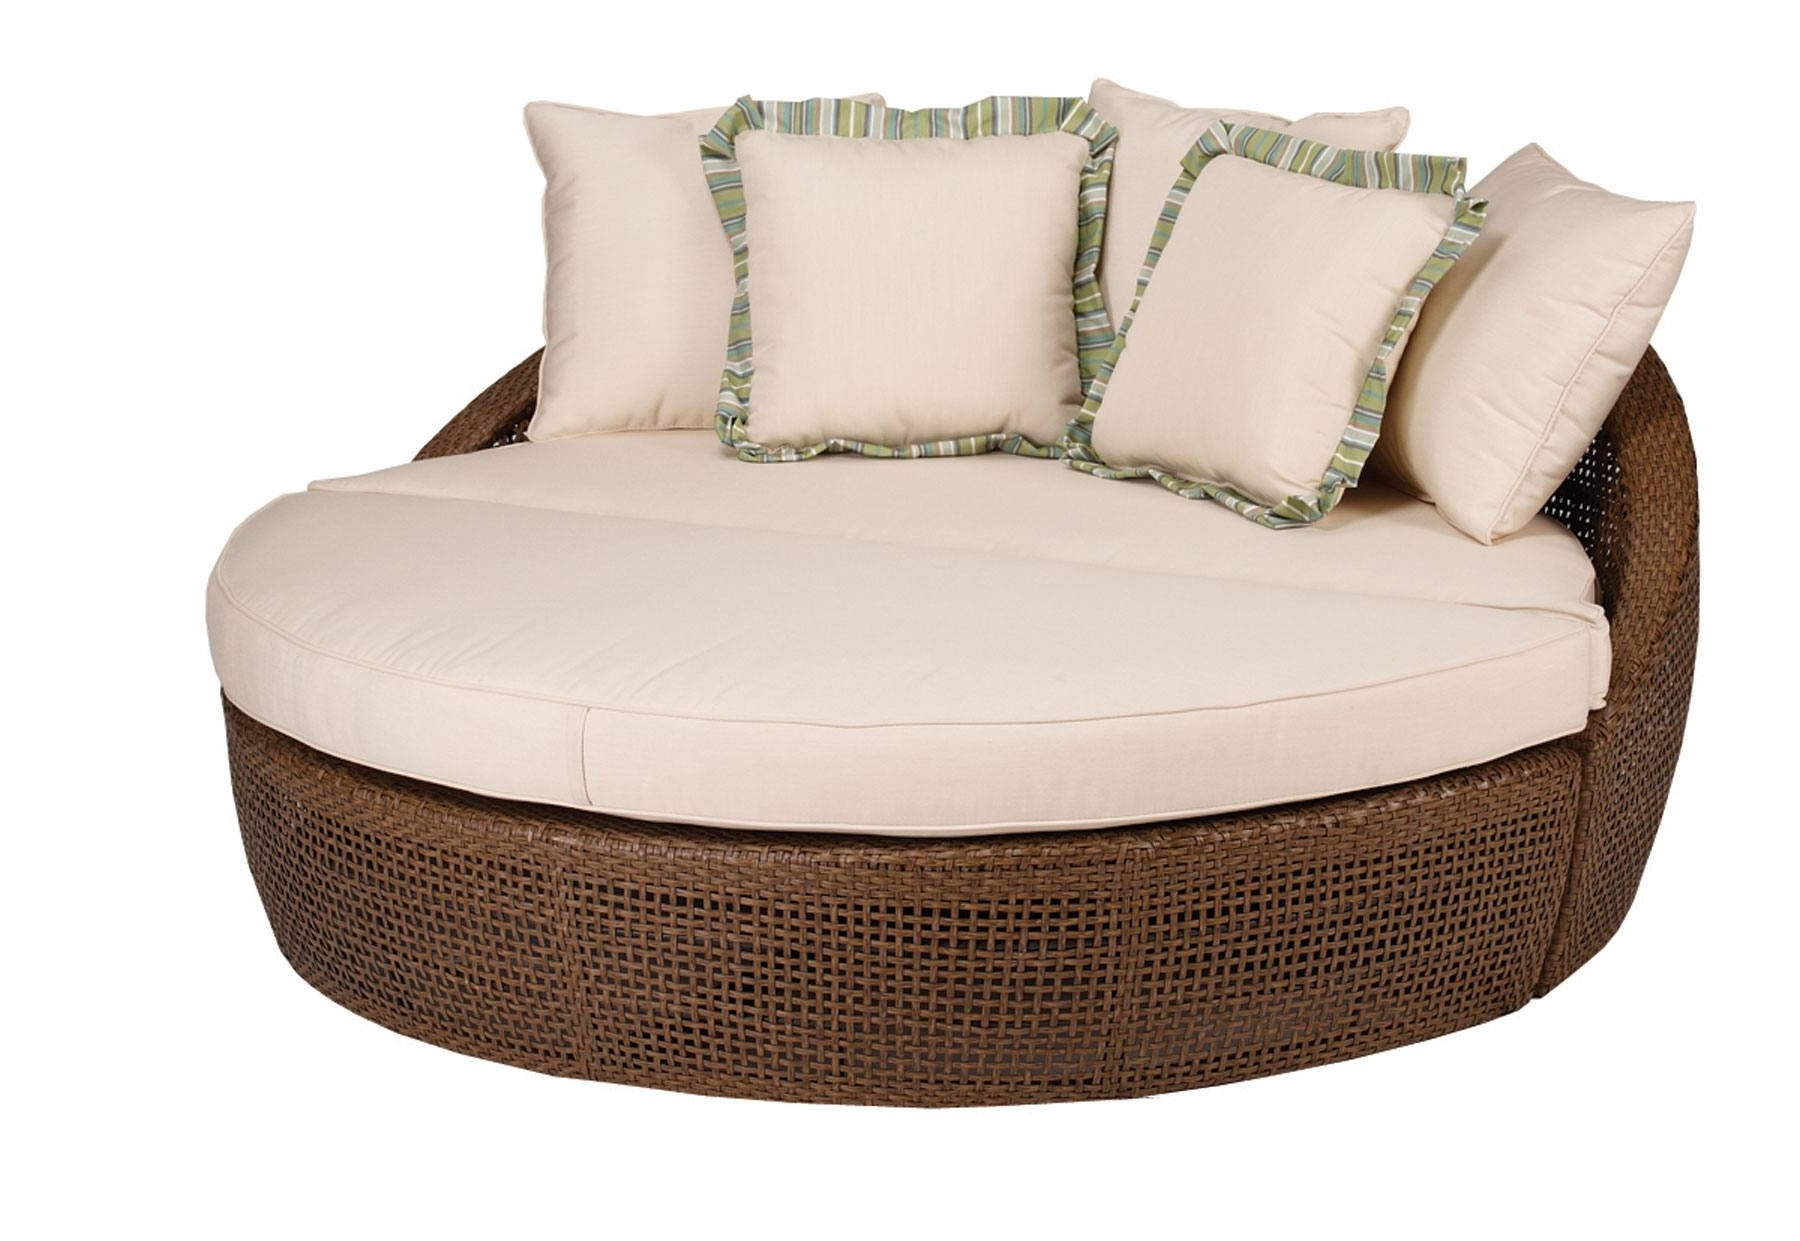 Cheap Chaise Lounge (View 15 of 15)